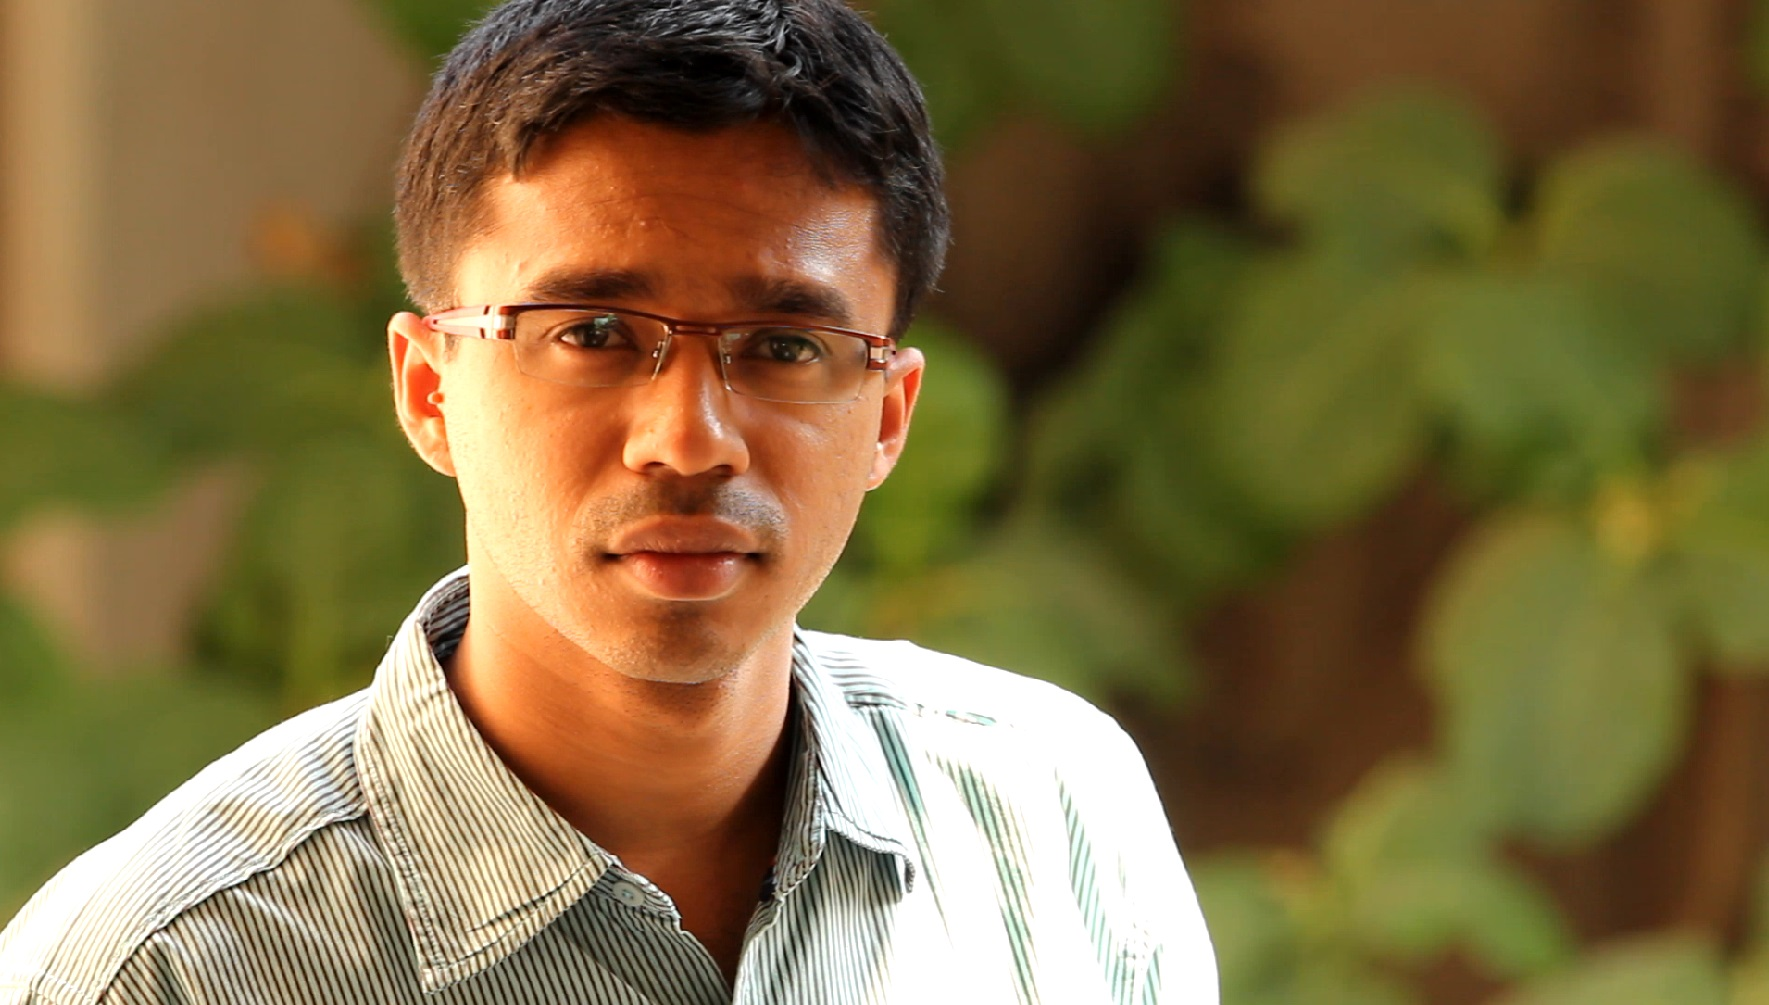 This Engineer Left His Comfortable Life And High Paying Job To Help Villagers Come Out Of Poverty